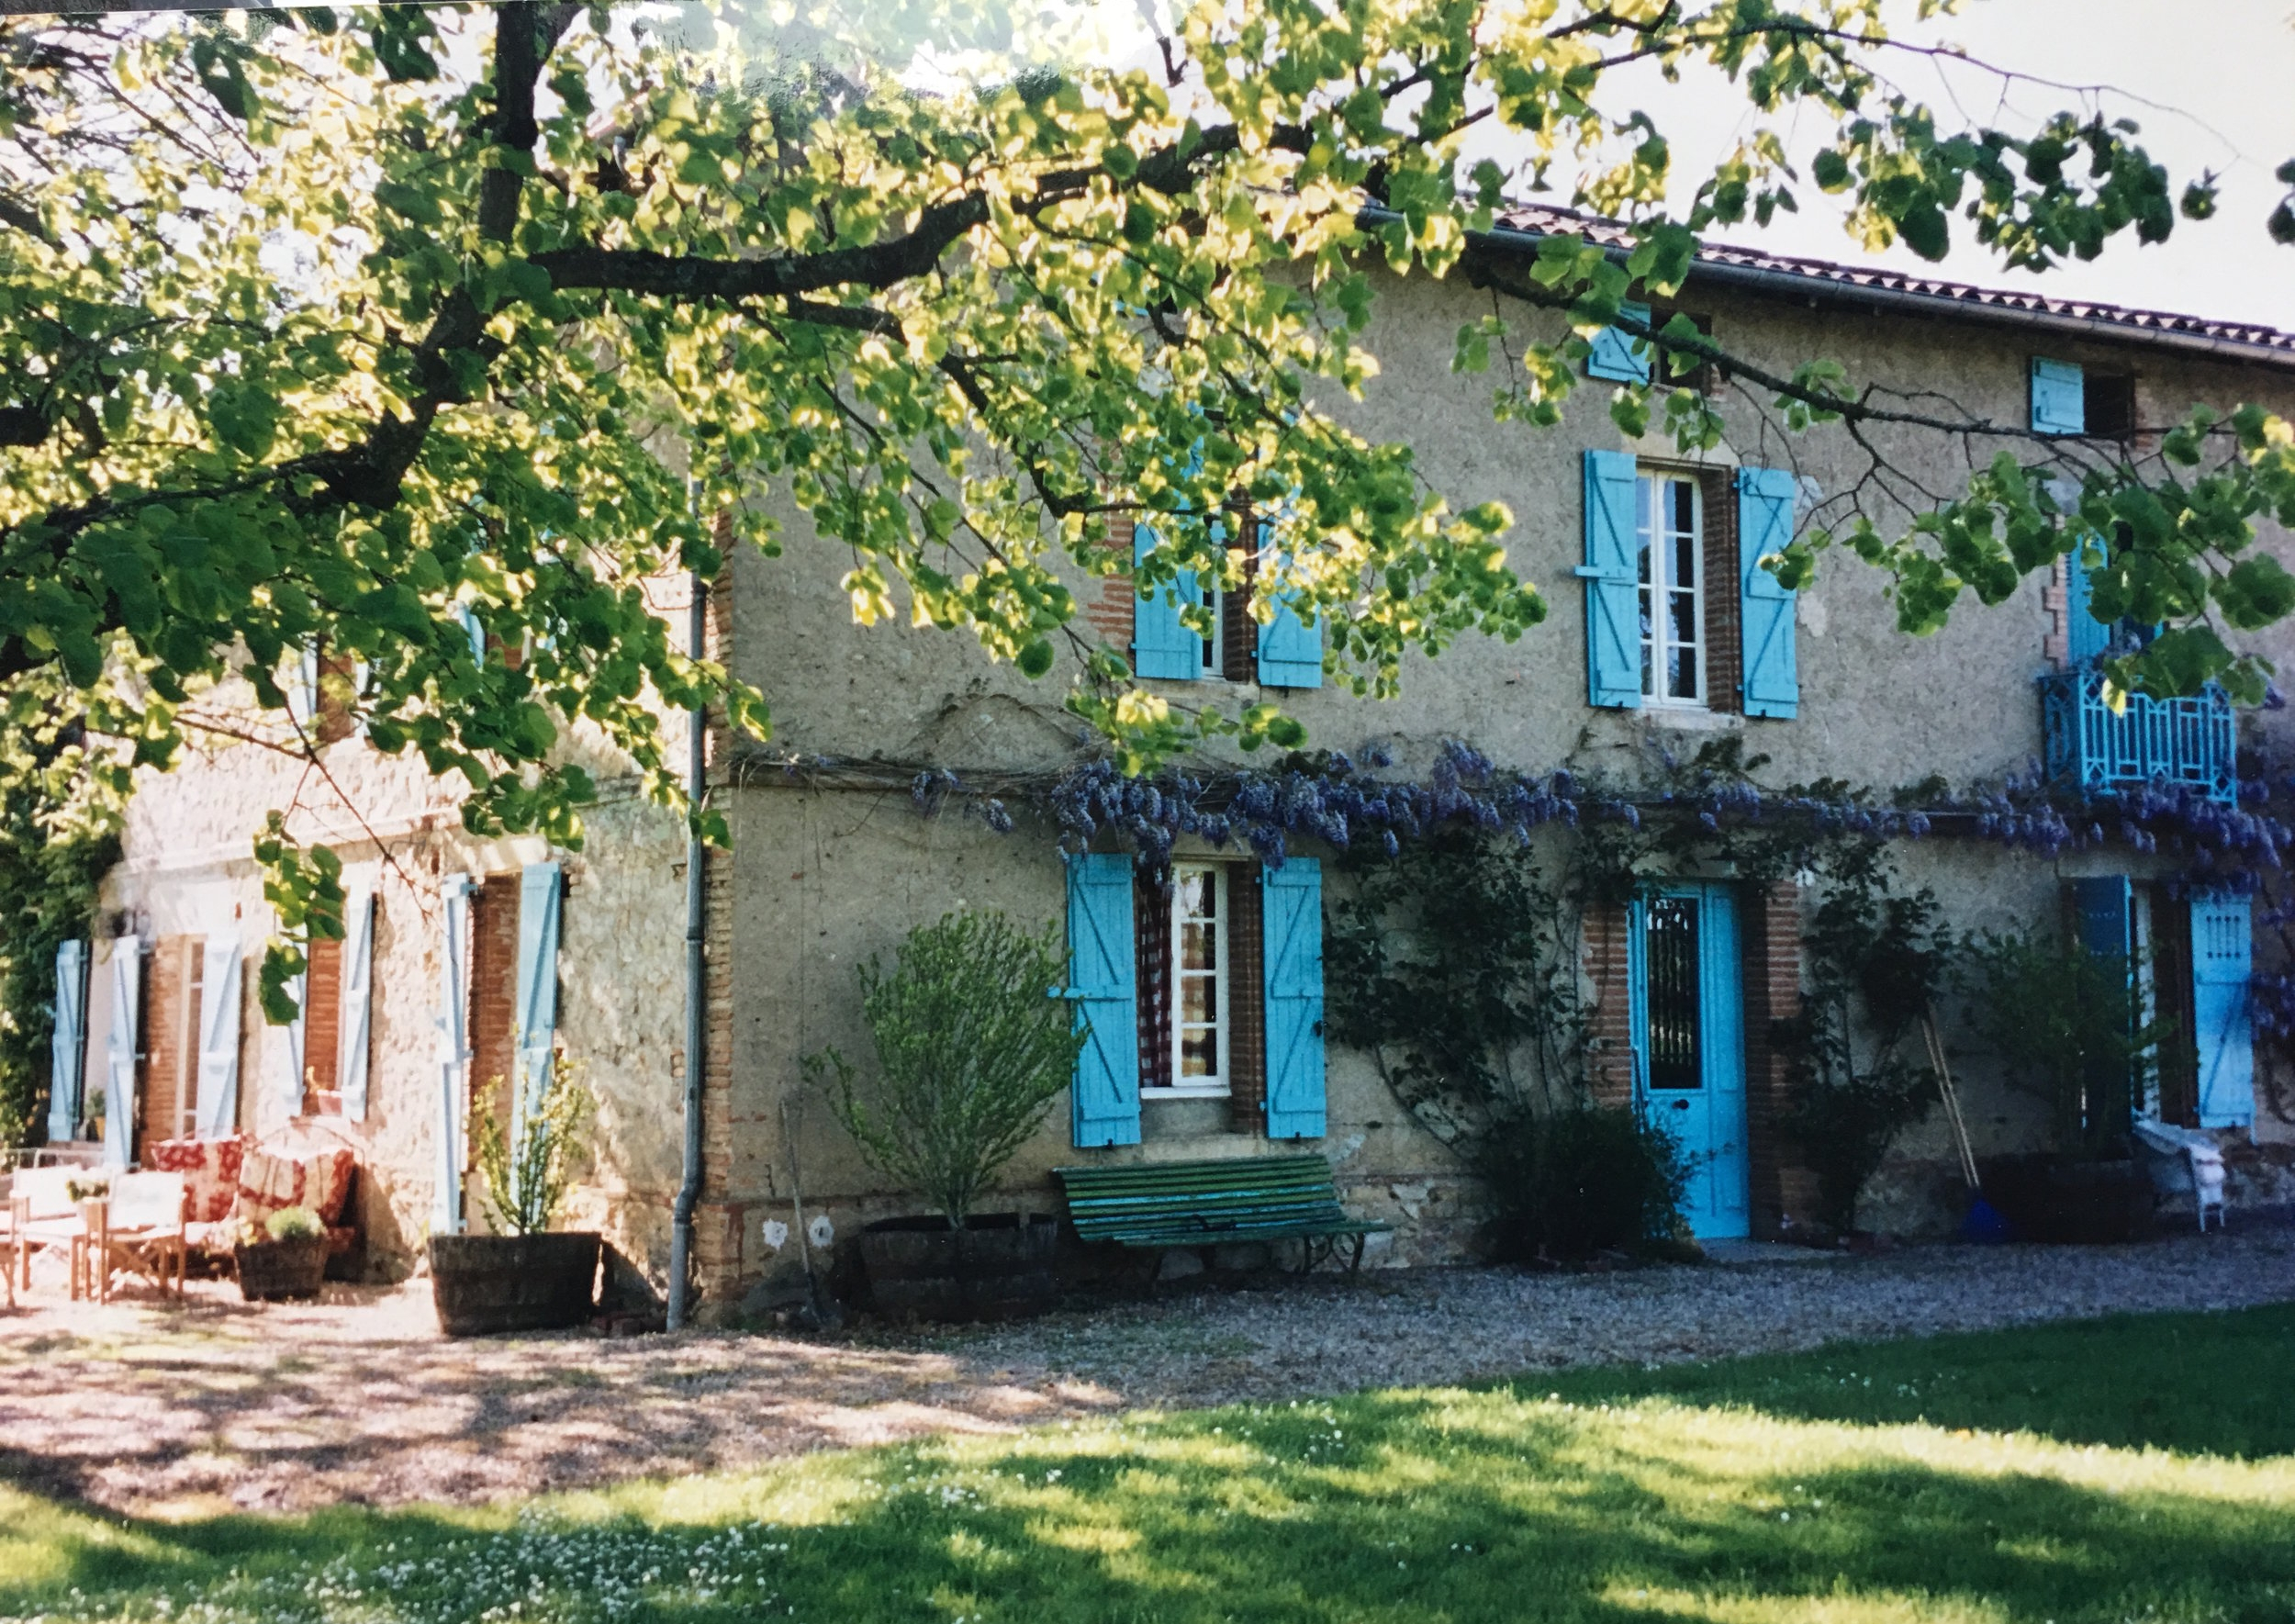 KATHRYN IRELAND'S MAGICAL COUNTRY HOUSE